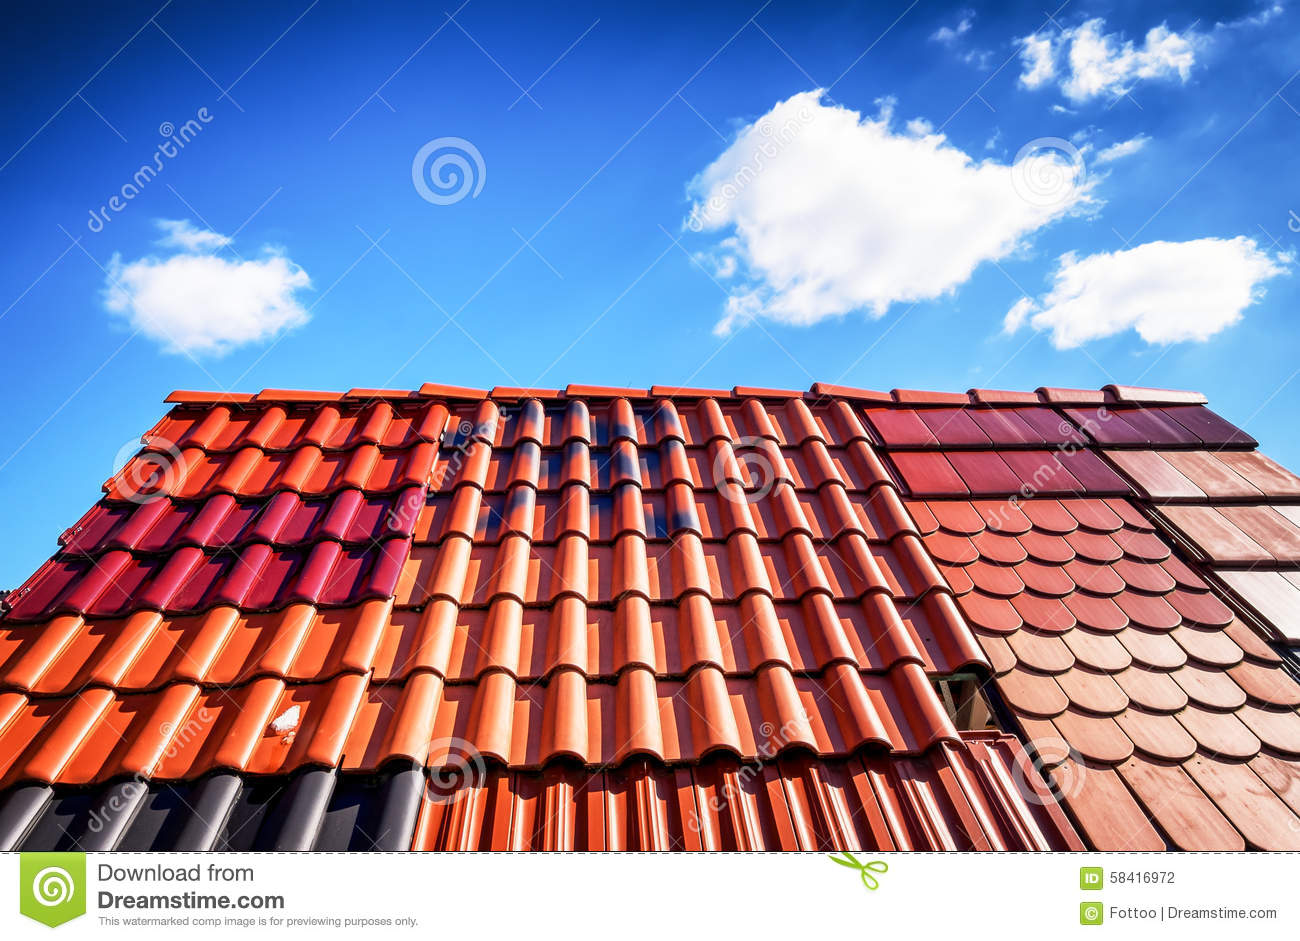 Roof Tiles Stock Photo Image 58416972